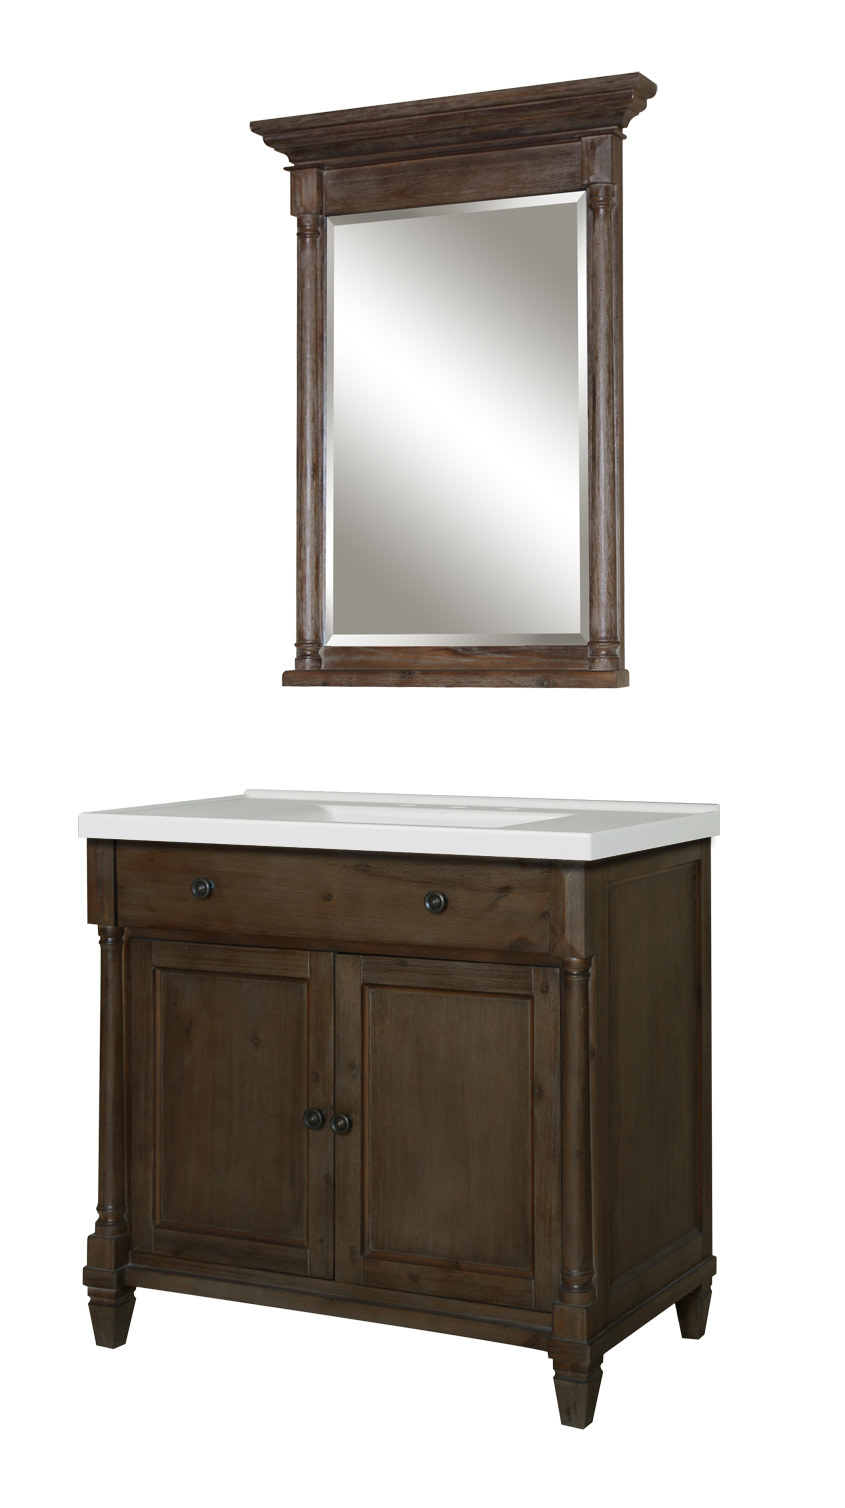 Miseno-MVNS36COM-36-034-Bathroom-Vanity-Set-Cabinet-Stone-Top-and-Mirror thumbnail 5